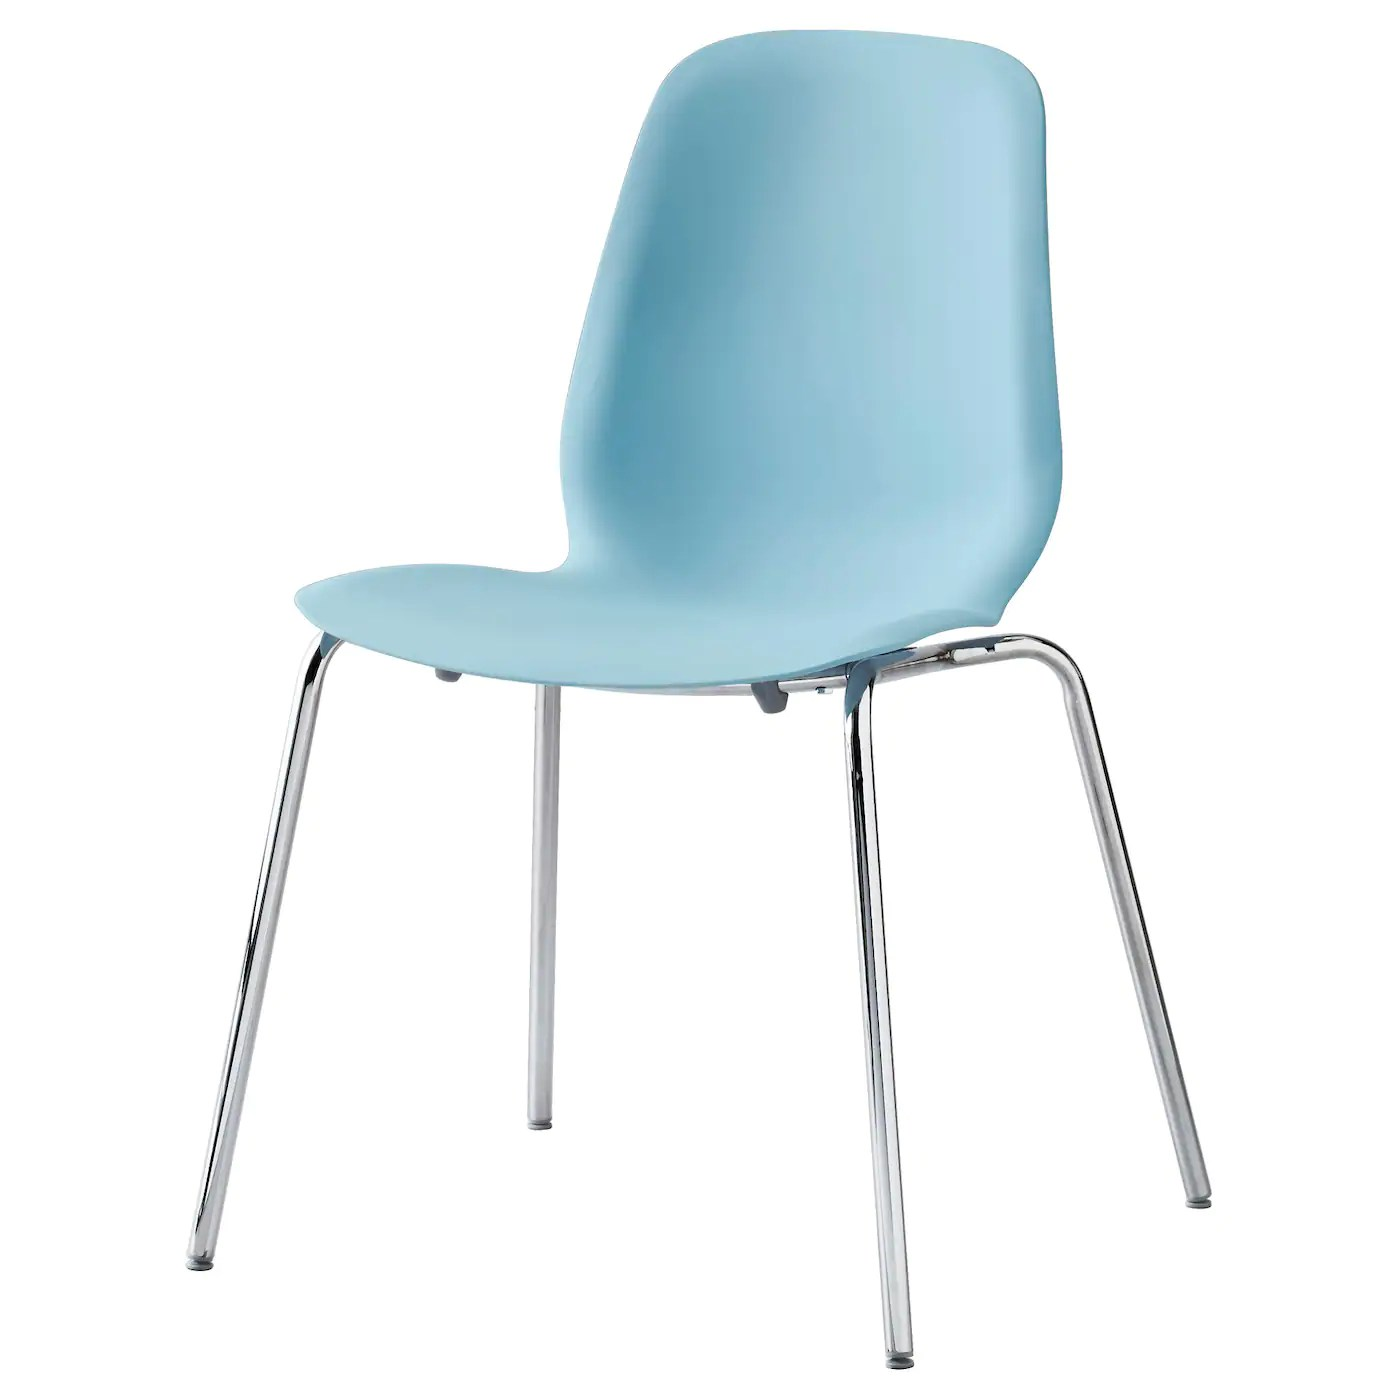 chair with light fishing online leifarne blue broringe chrome plated ikea